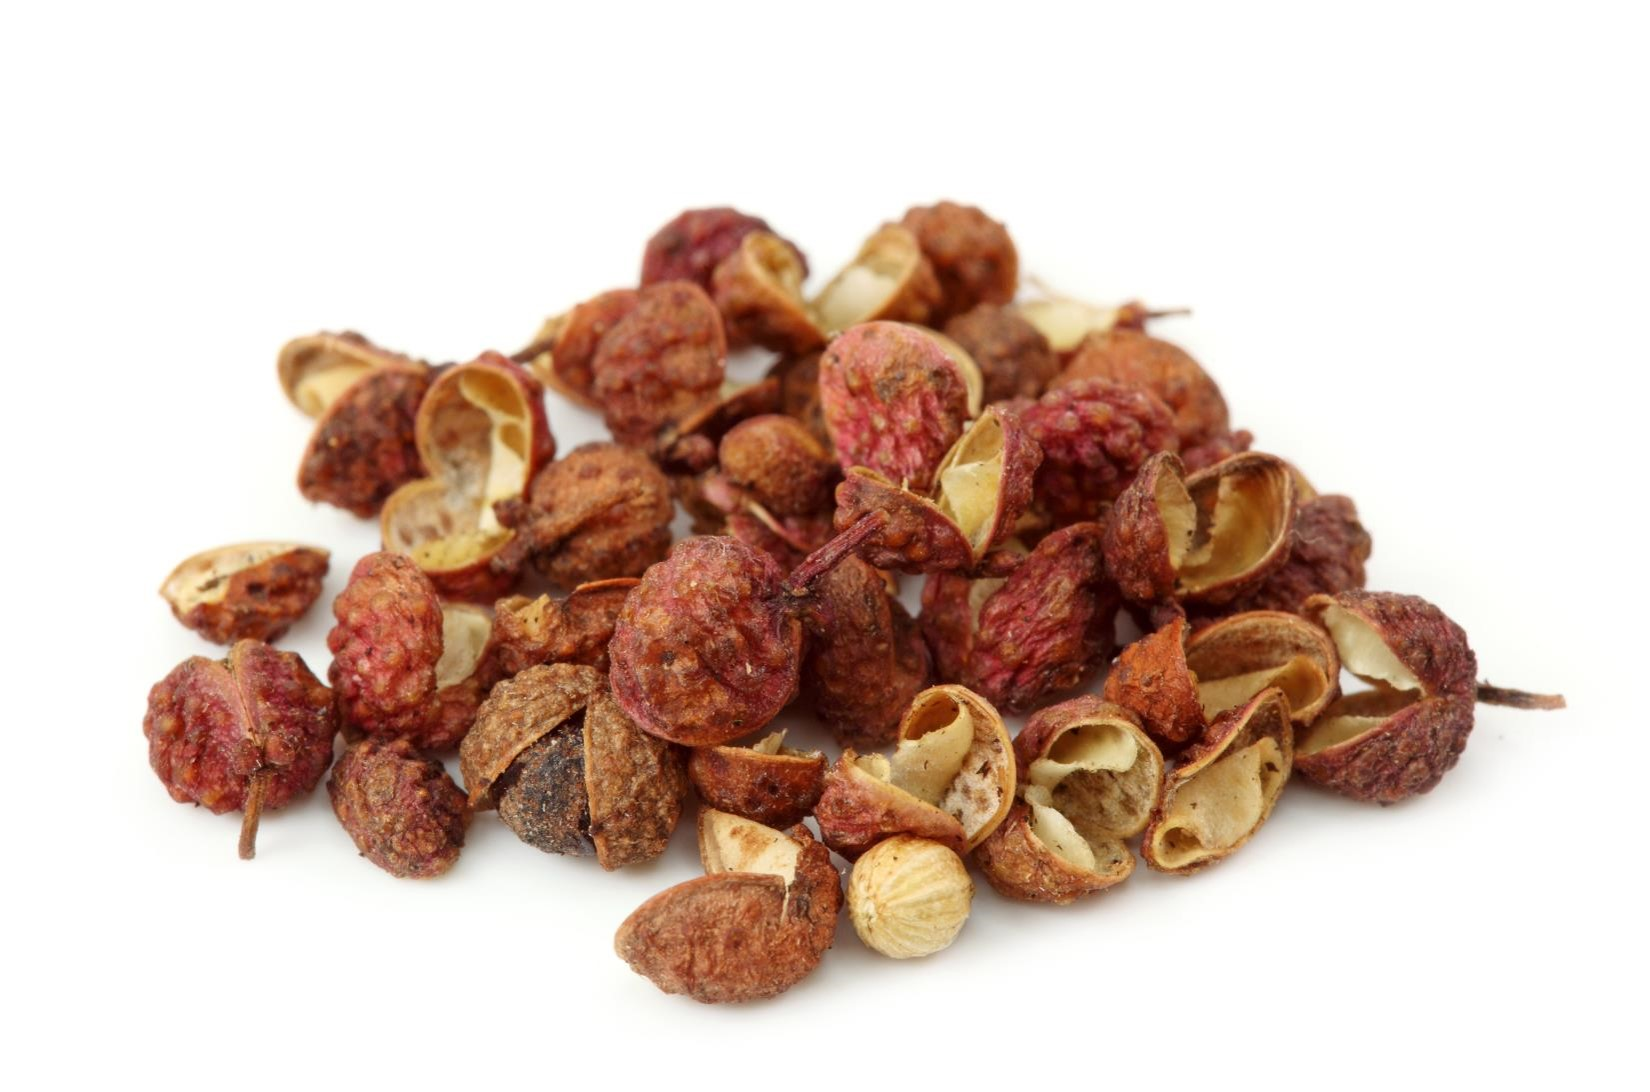 FIND OUT MORE ABOUT SICHUAN PEPPER